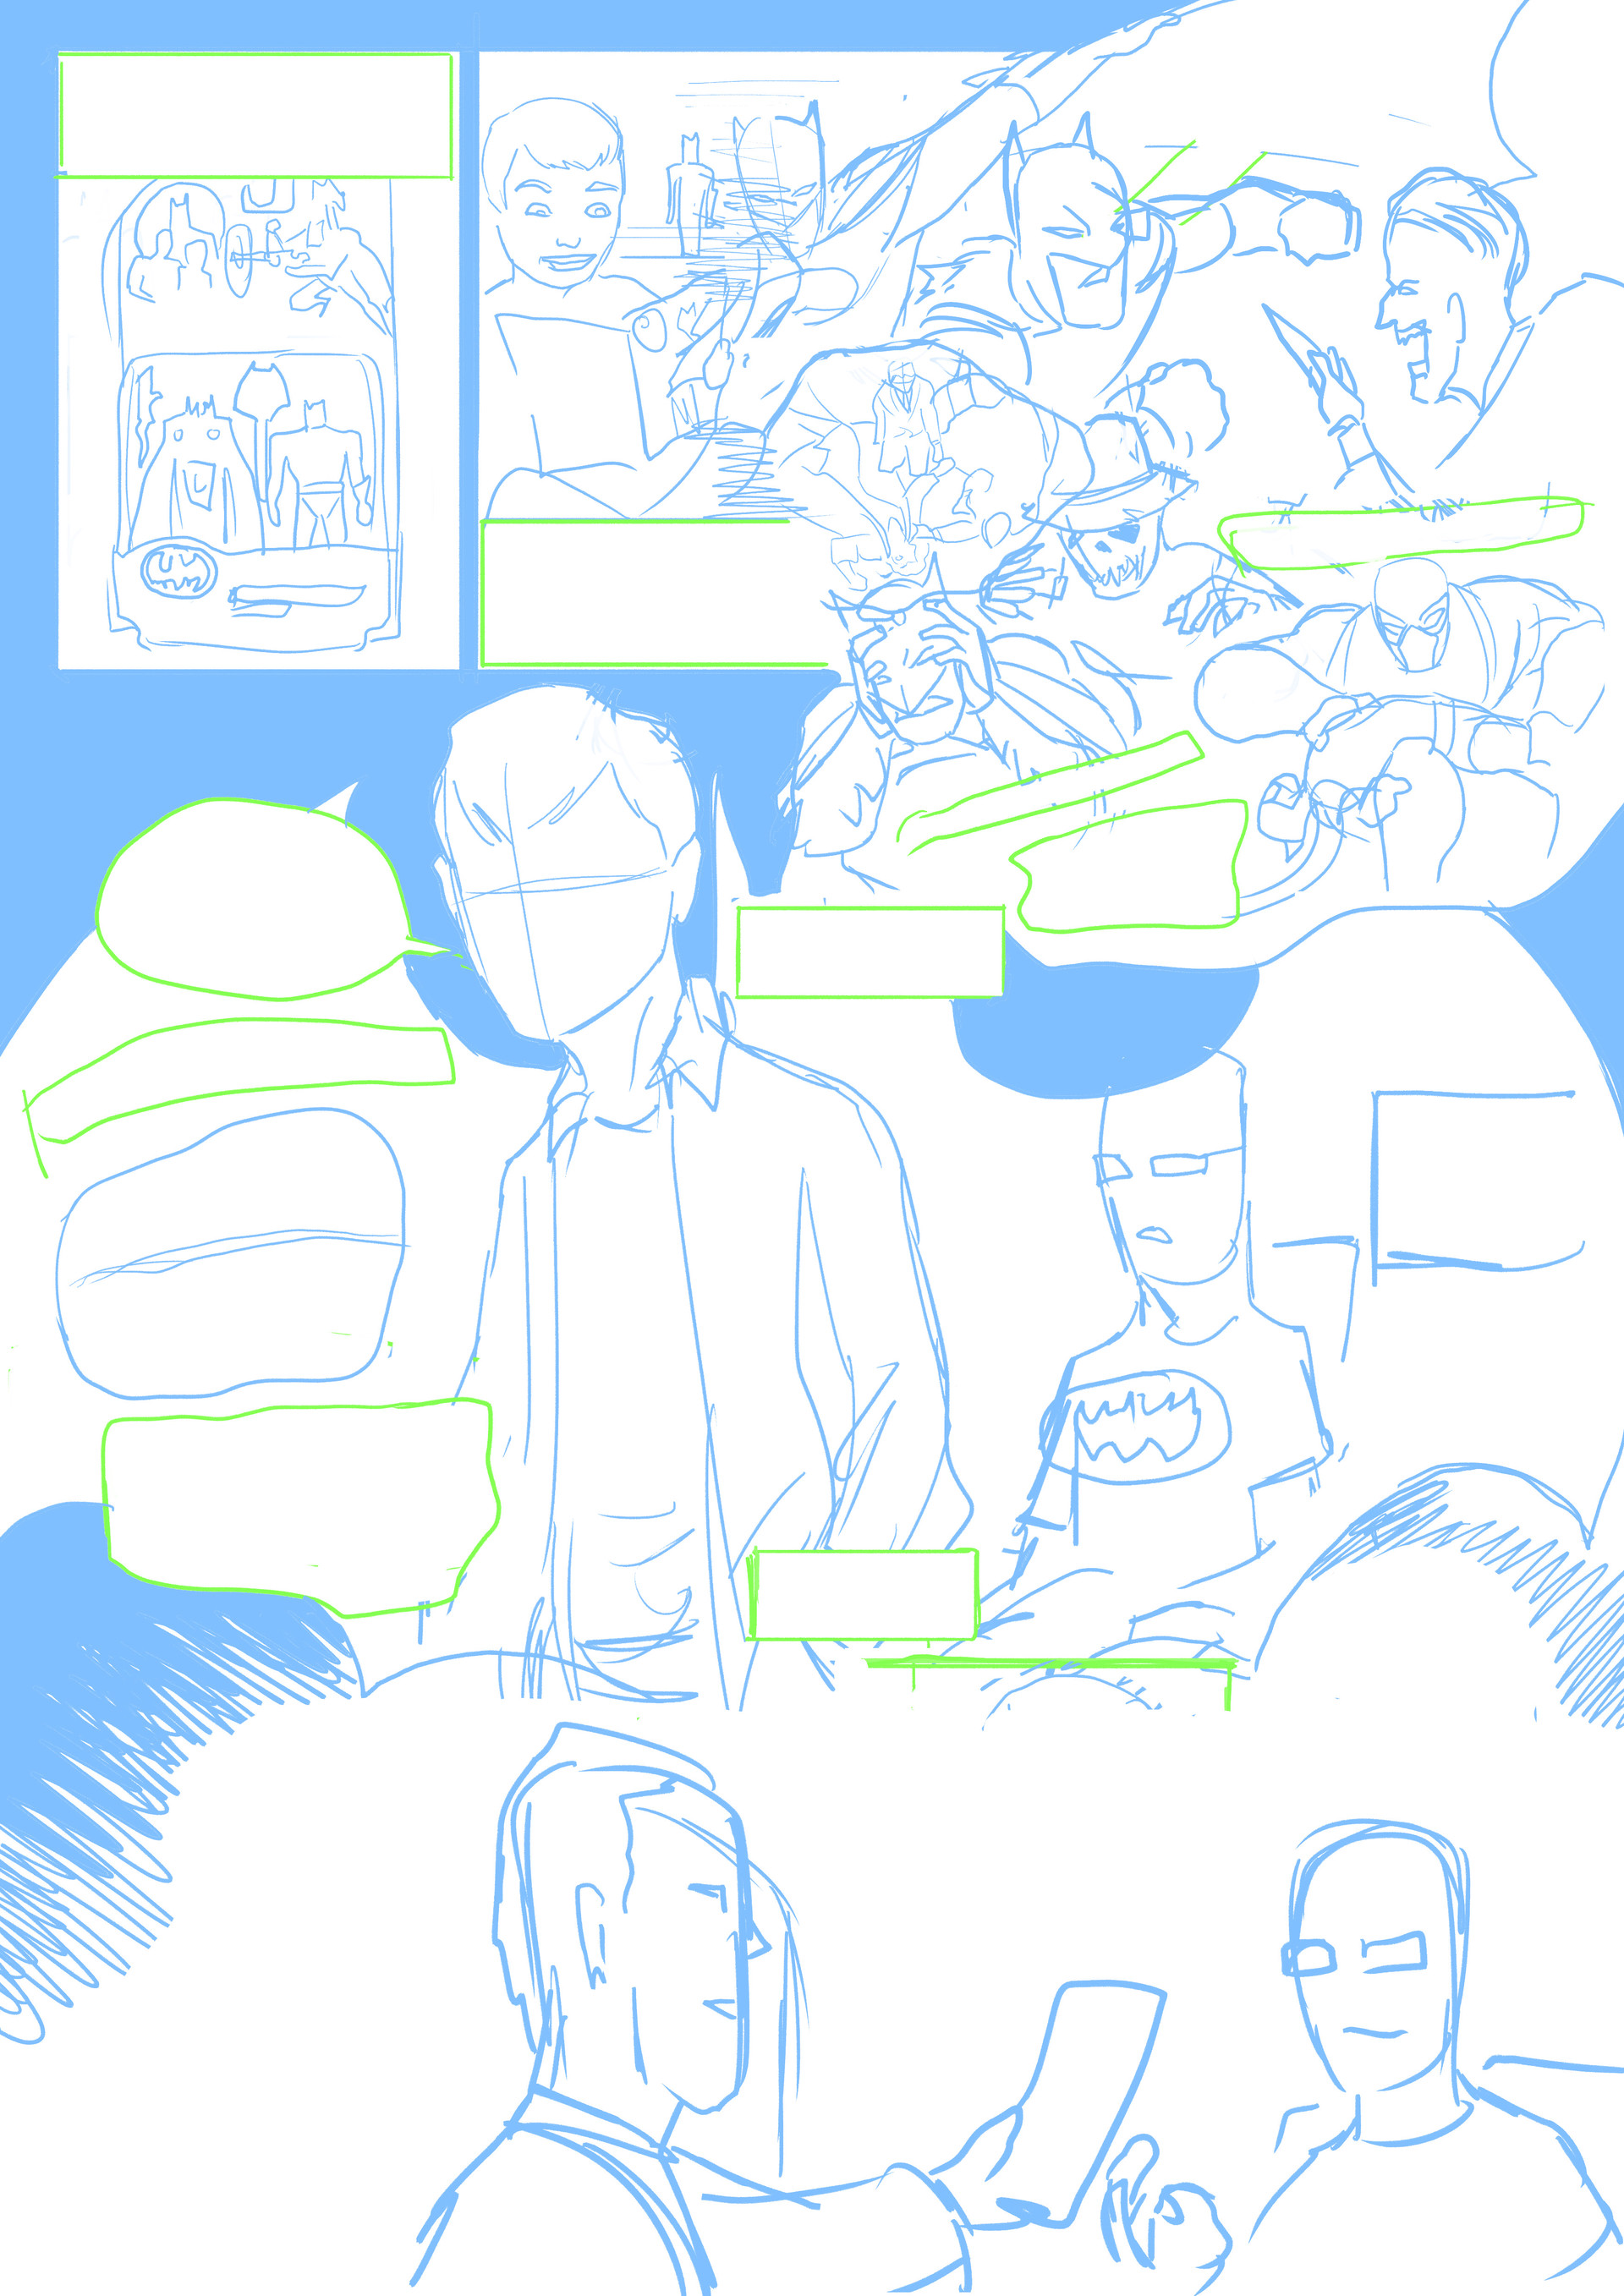 Elliot balson page 1 rough